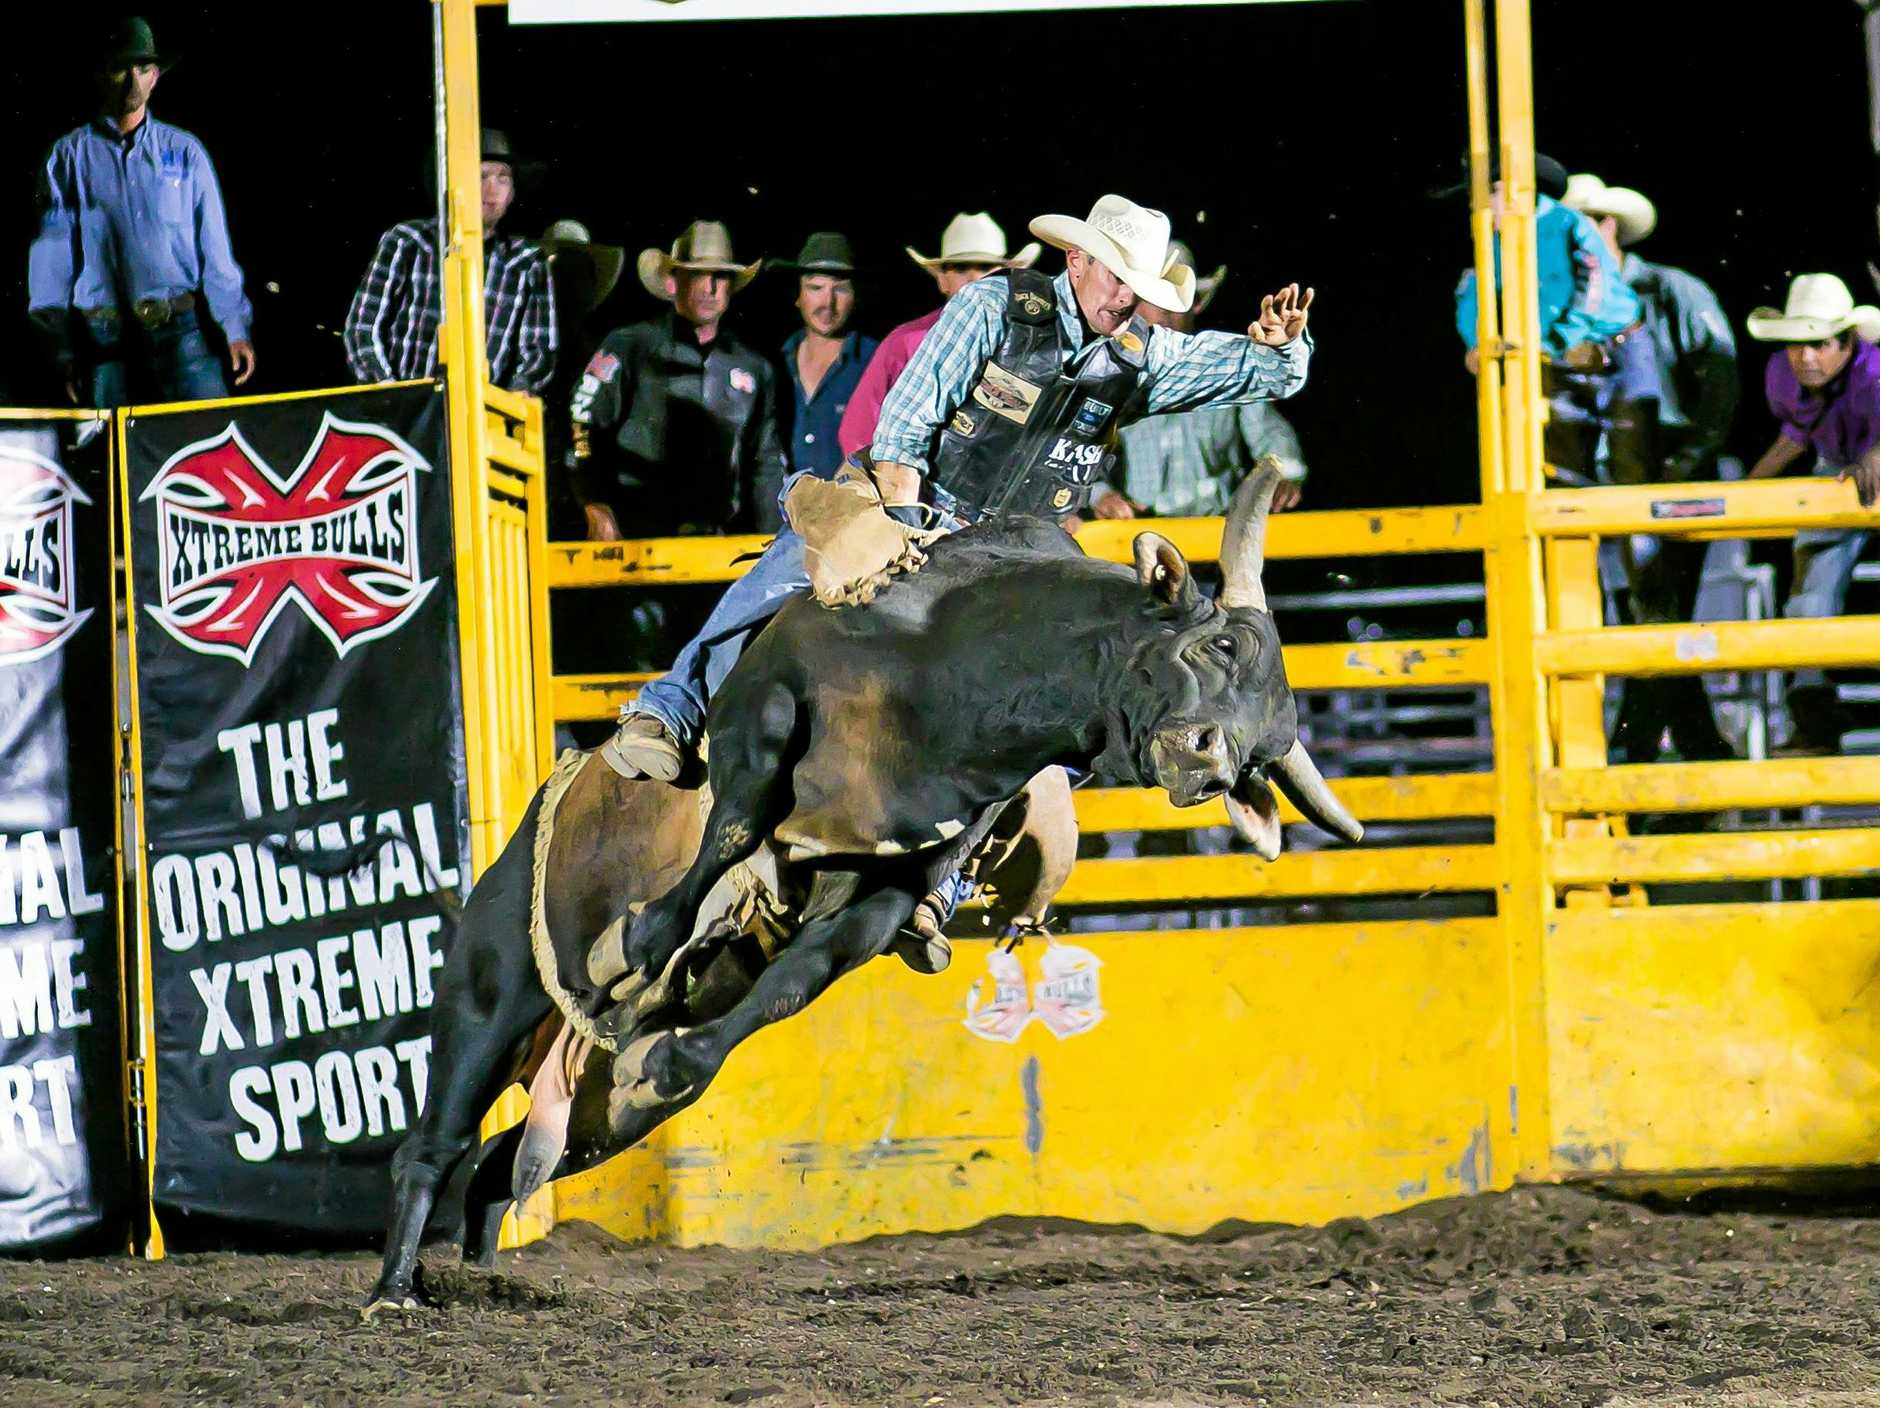 HIGH-FLYING ACTION: Champion bull rider Jason O'Hearn will start among the favourites at the Xtreme Bulls event at the Great Western Hotel tonight.